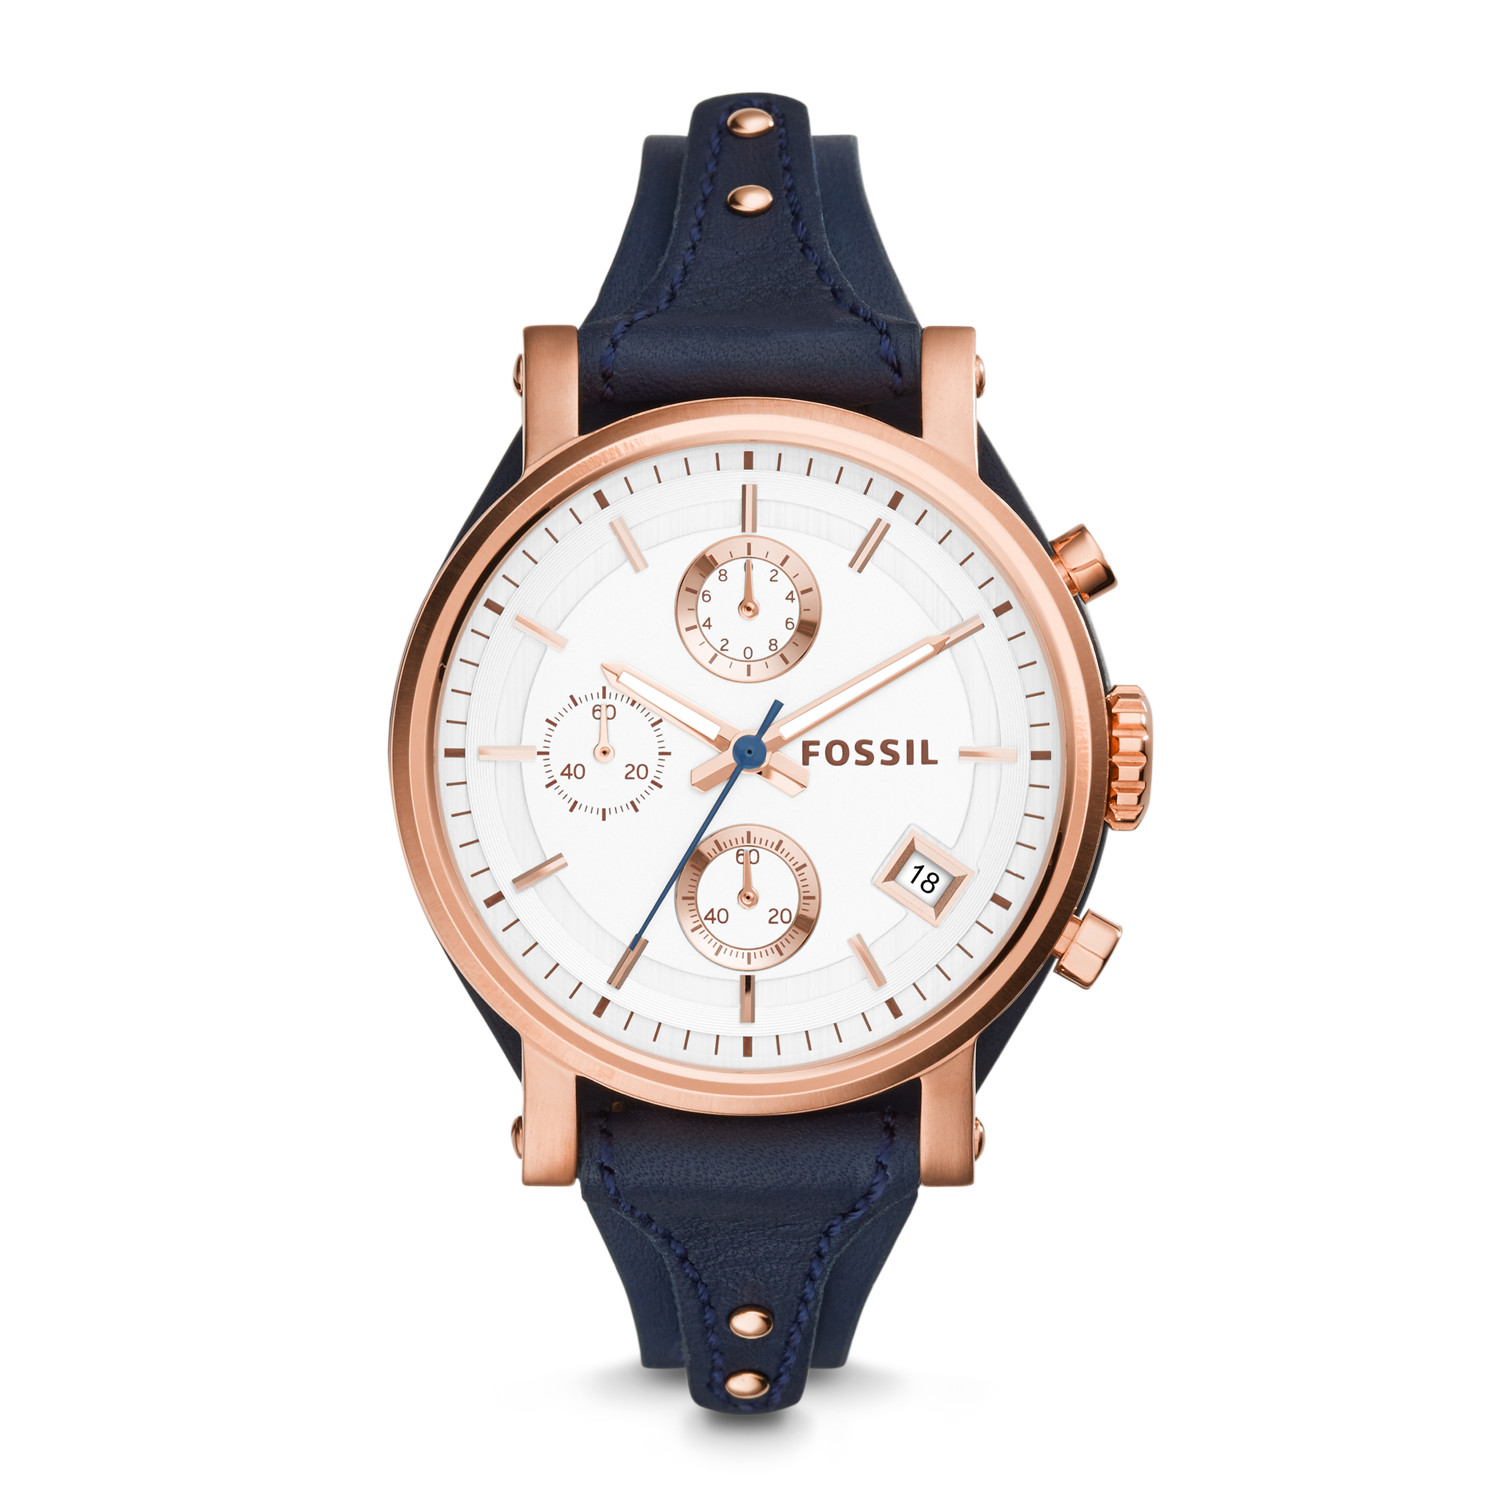 2a64f884947 Original Boyfriend Chronograph Navy Leather Watch - Fossil